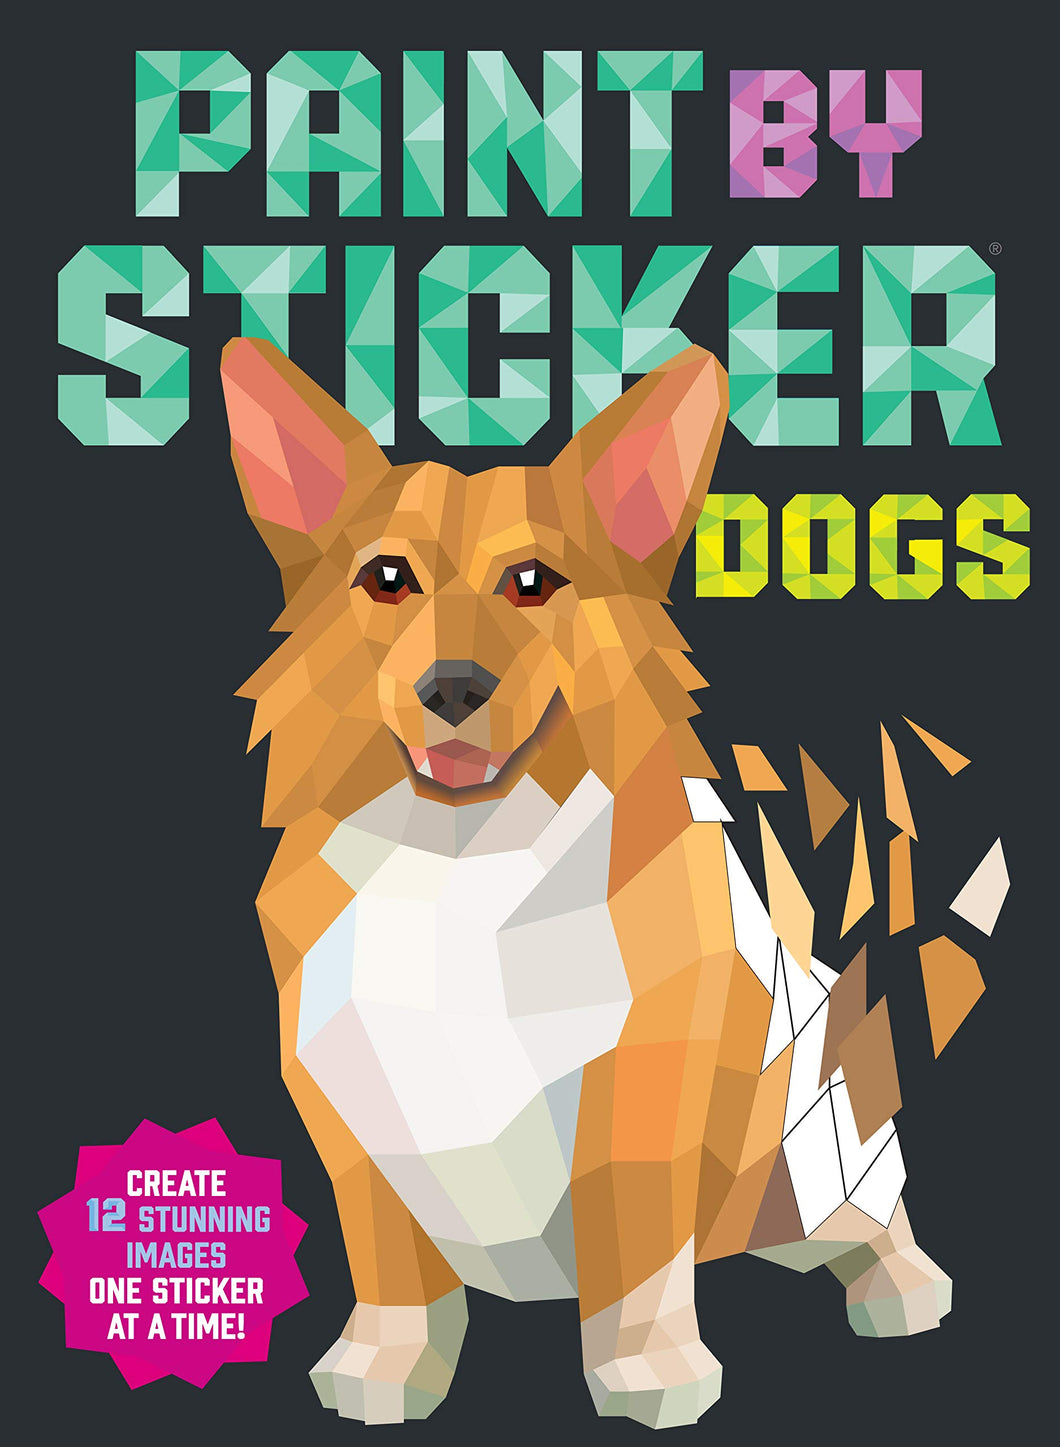 Paint by Sticker: Dogs